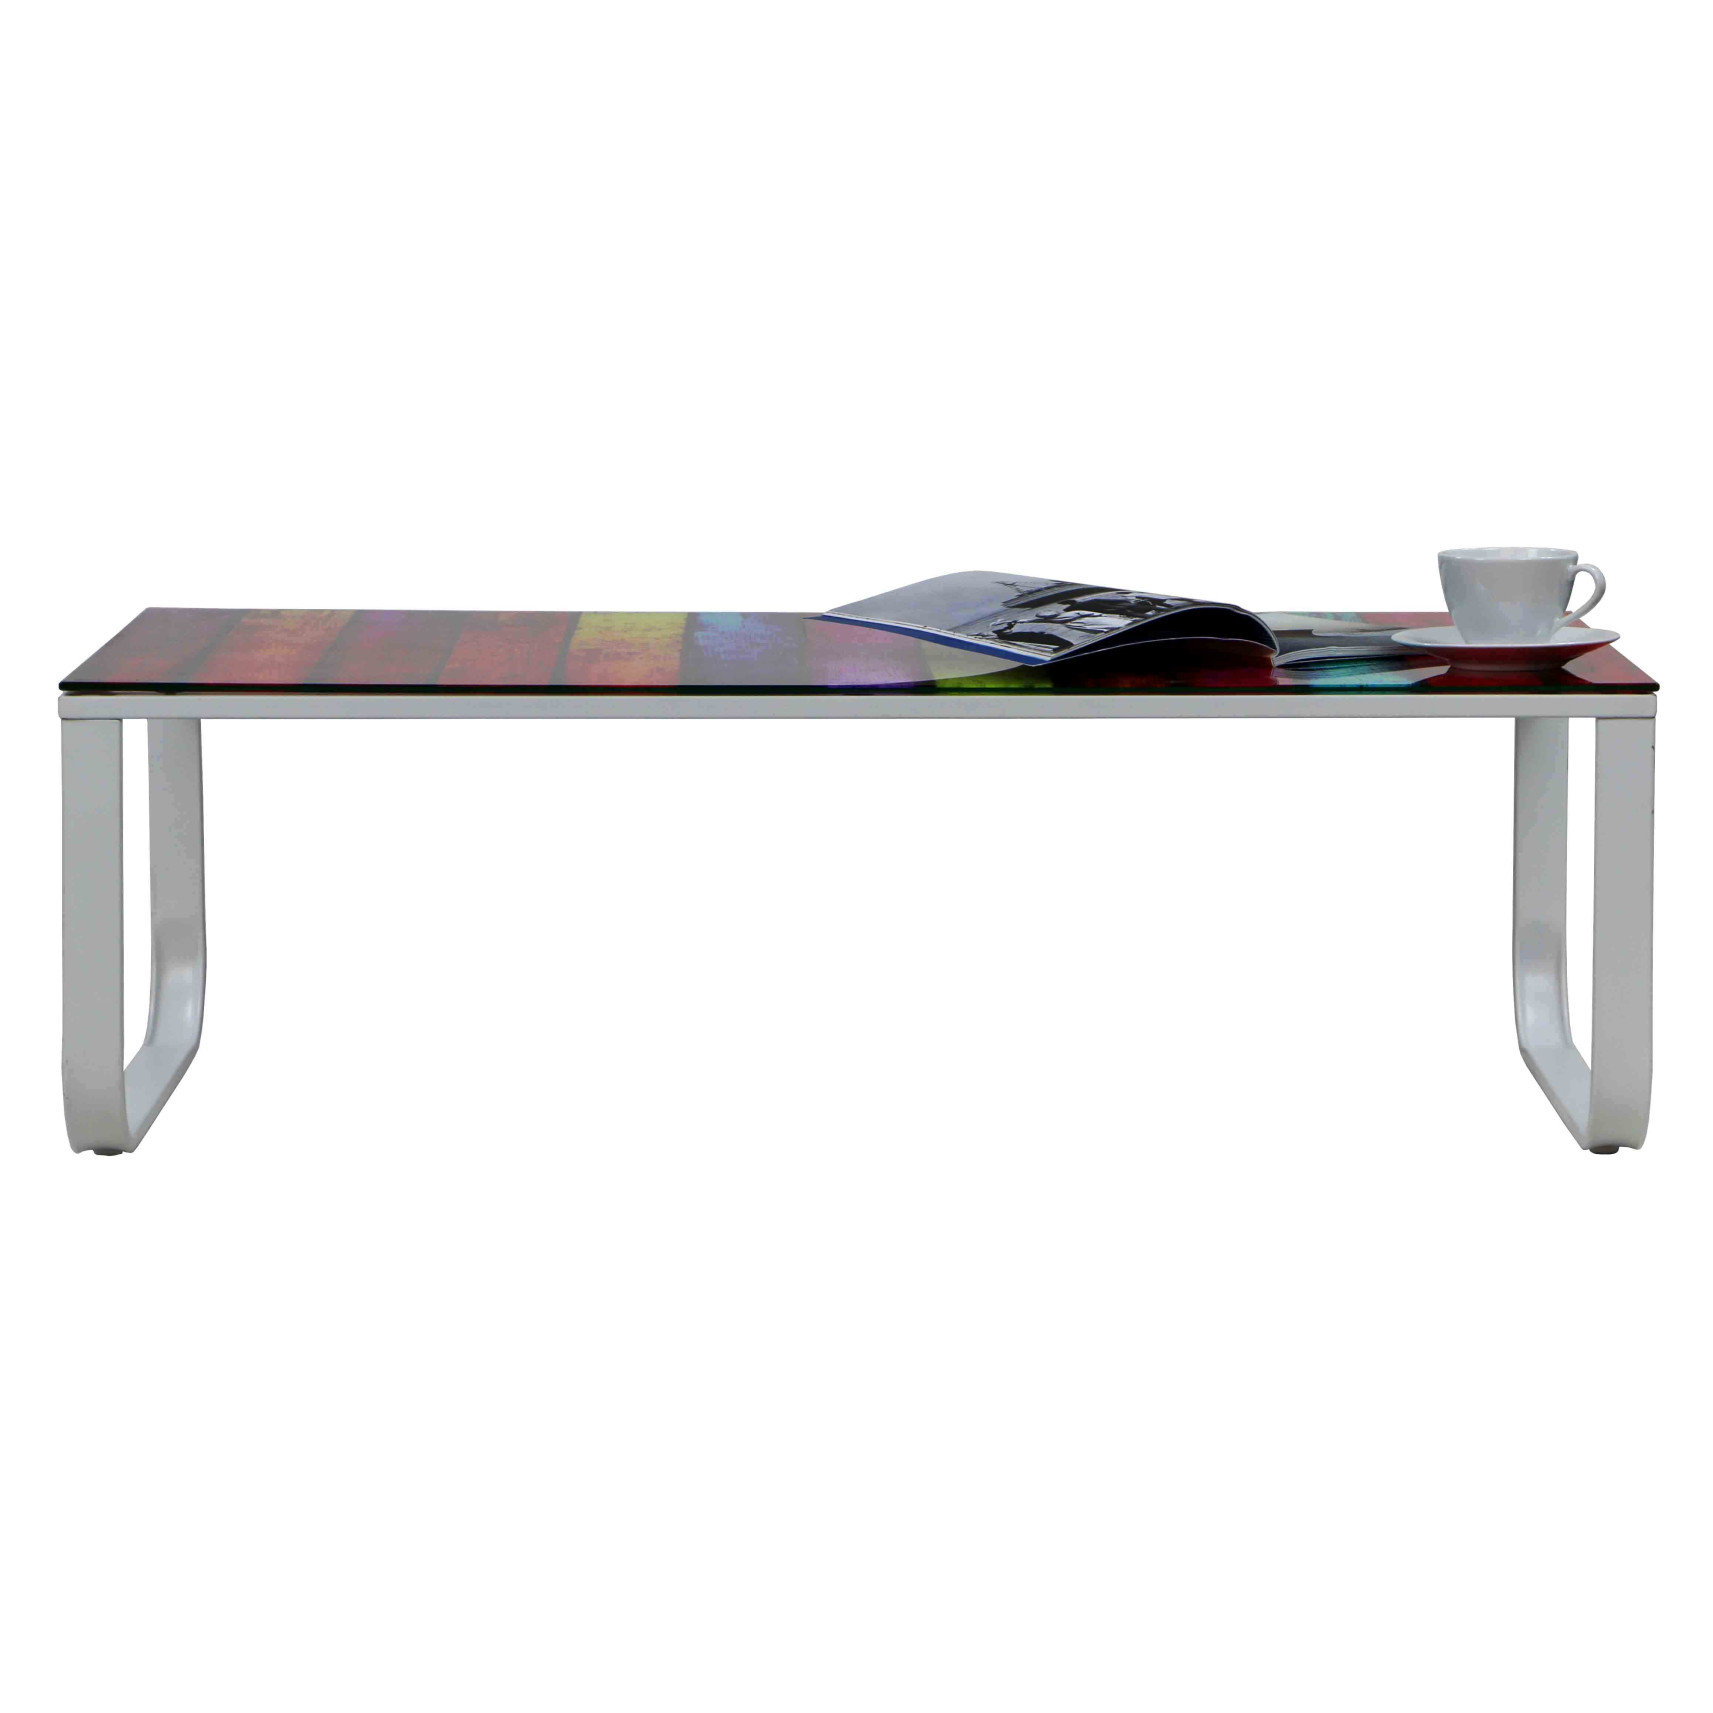 Iris Rainbow Tempered Glass Coffee Table Furniture Home Decor Fortytwo [ 1713 x 1713 Pixel ]